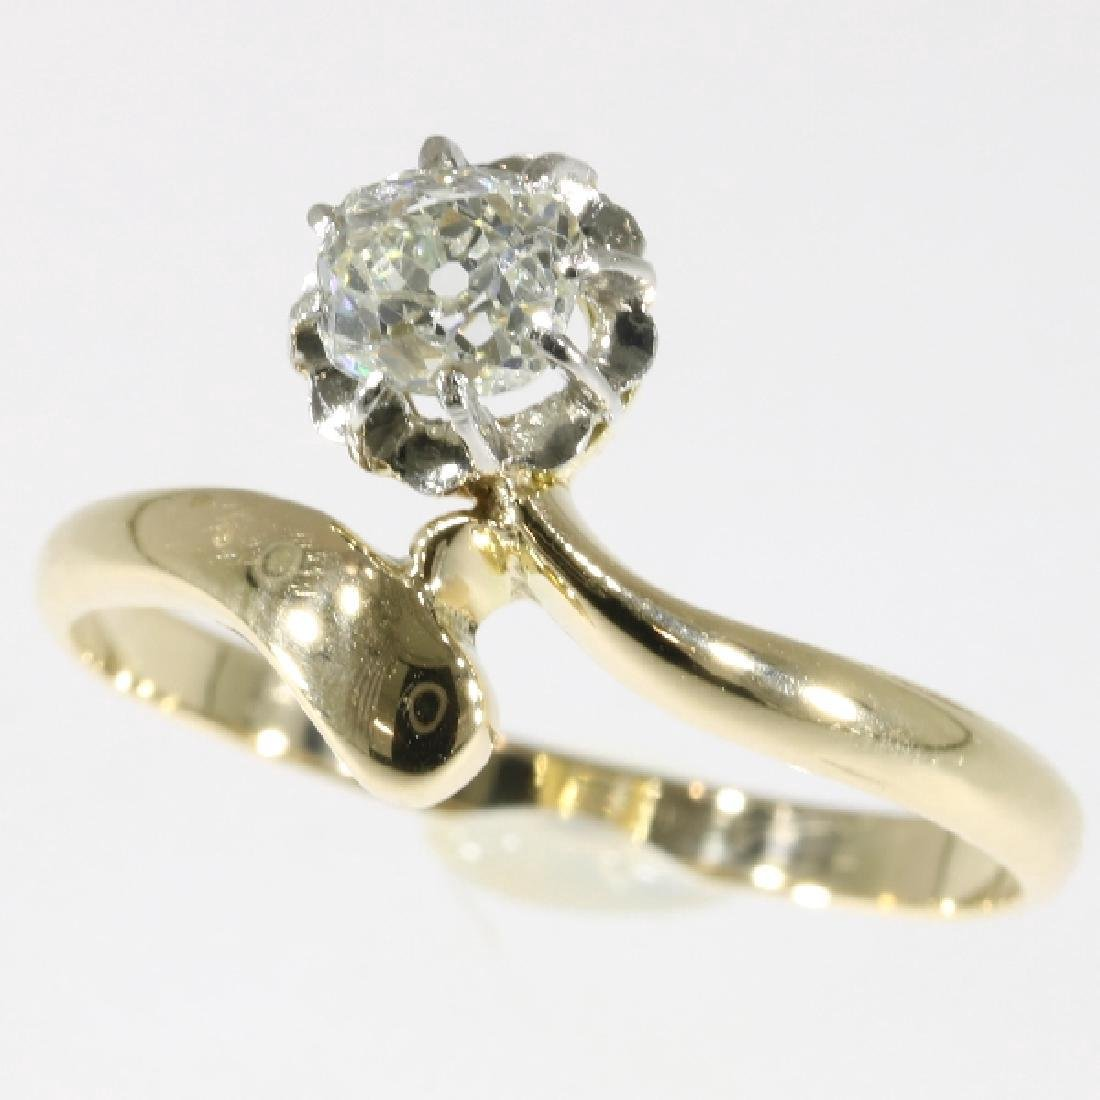 Antique Belle Epoque 14K Gold Diamond Ring, .4ct